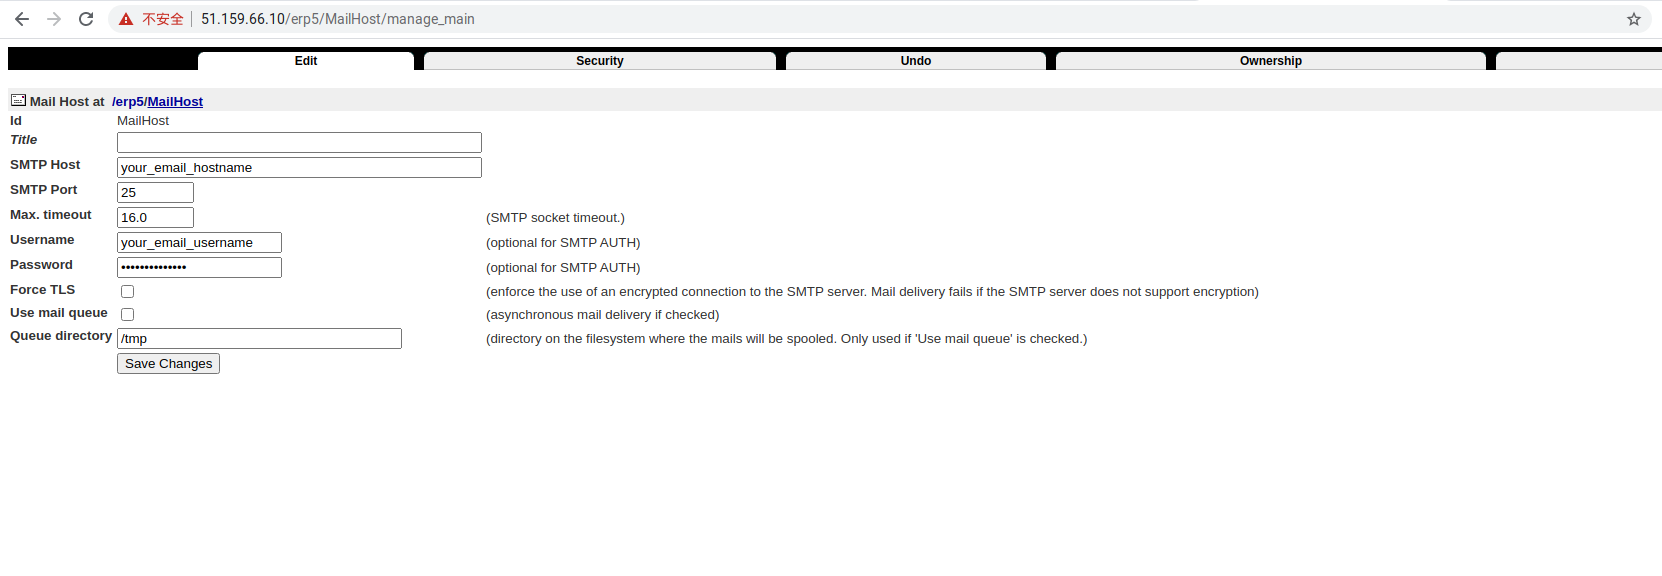 Zope Interface - Configure Mailhost